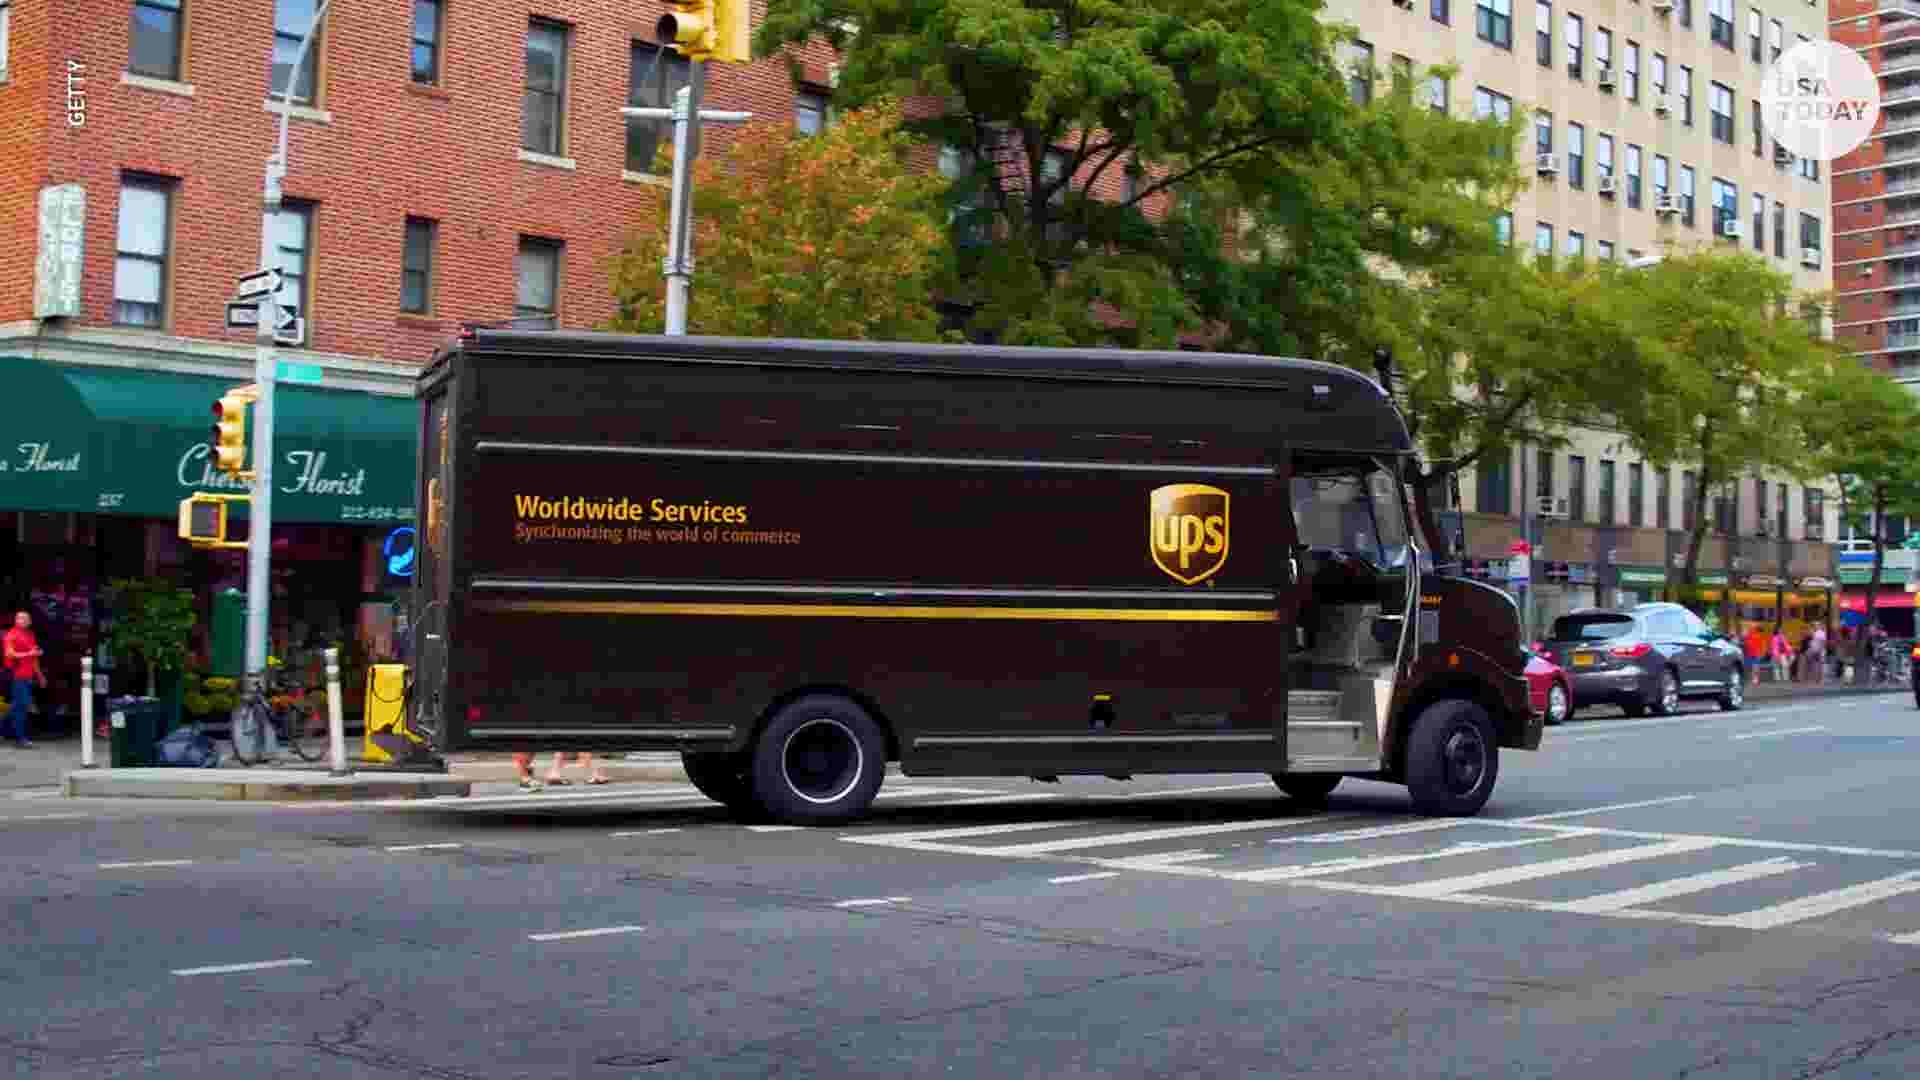 Ups To Get Space In Cvs Michaels Advance Auto Parts Stores For Package Shipping Pickup